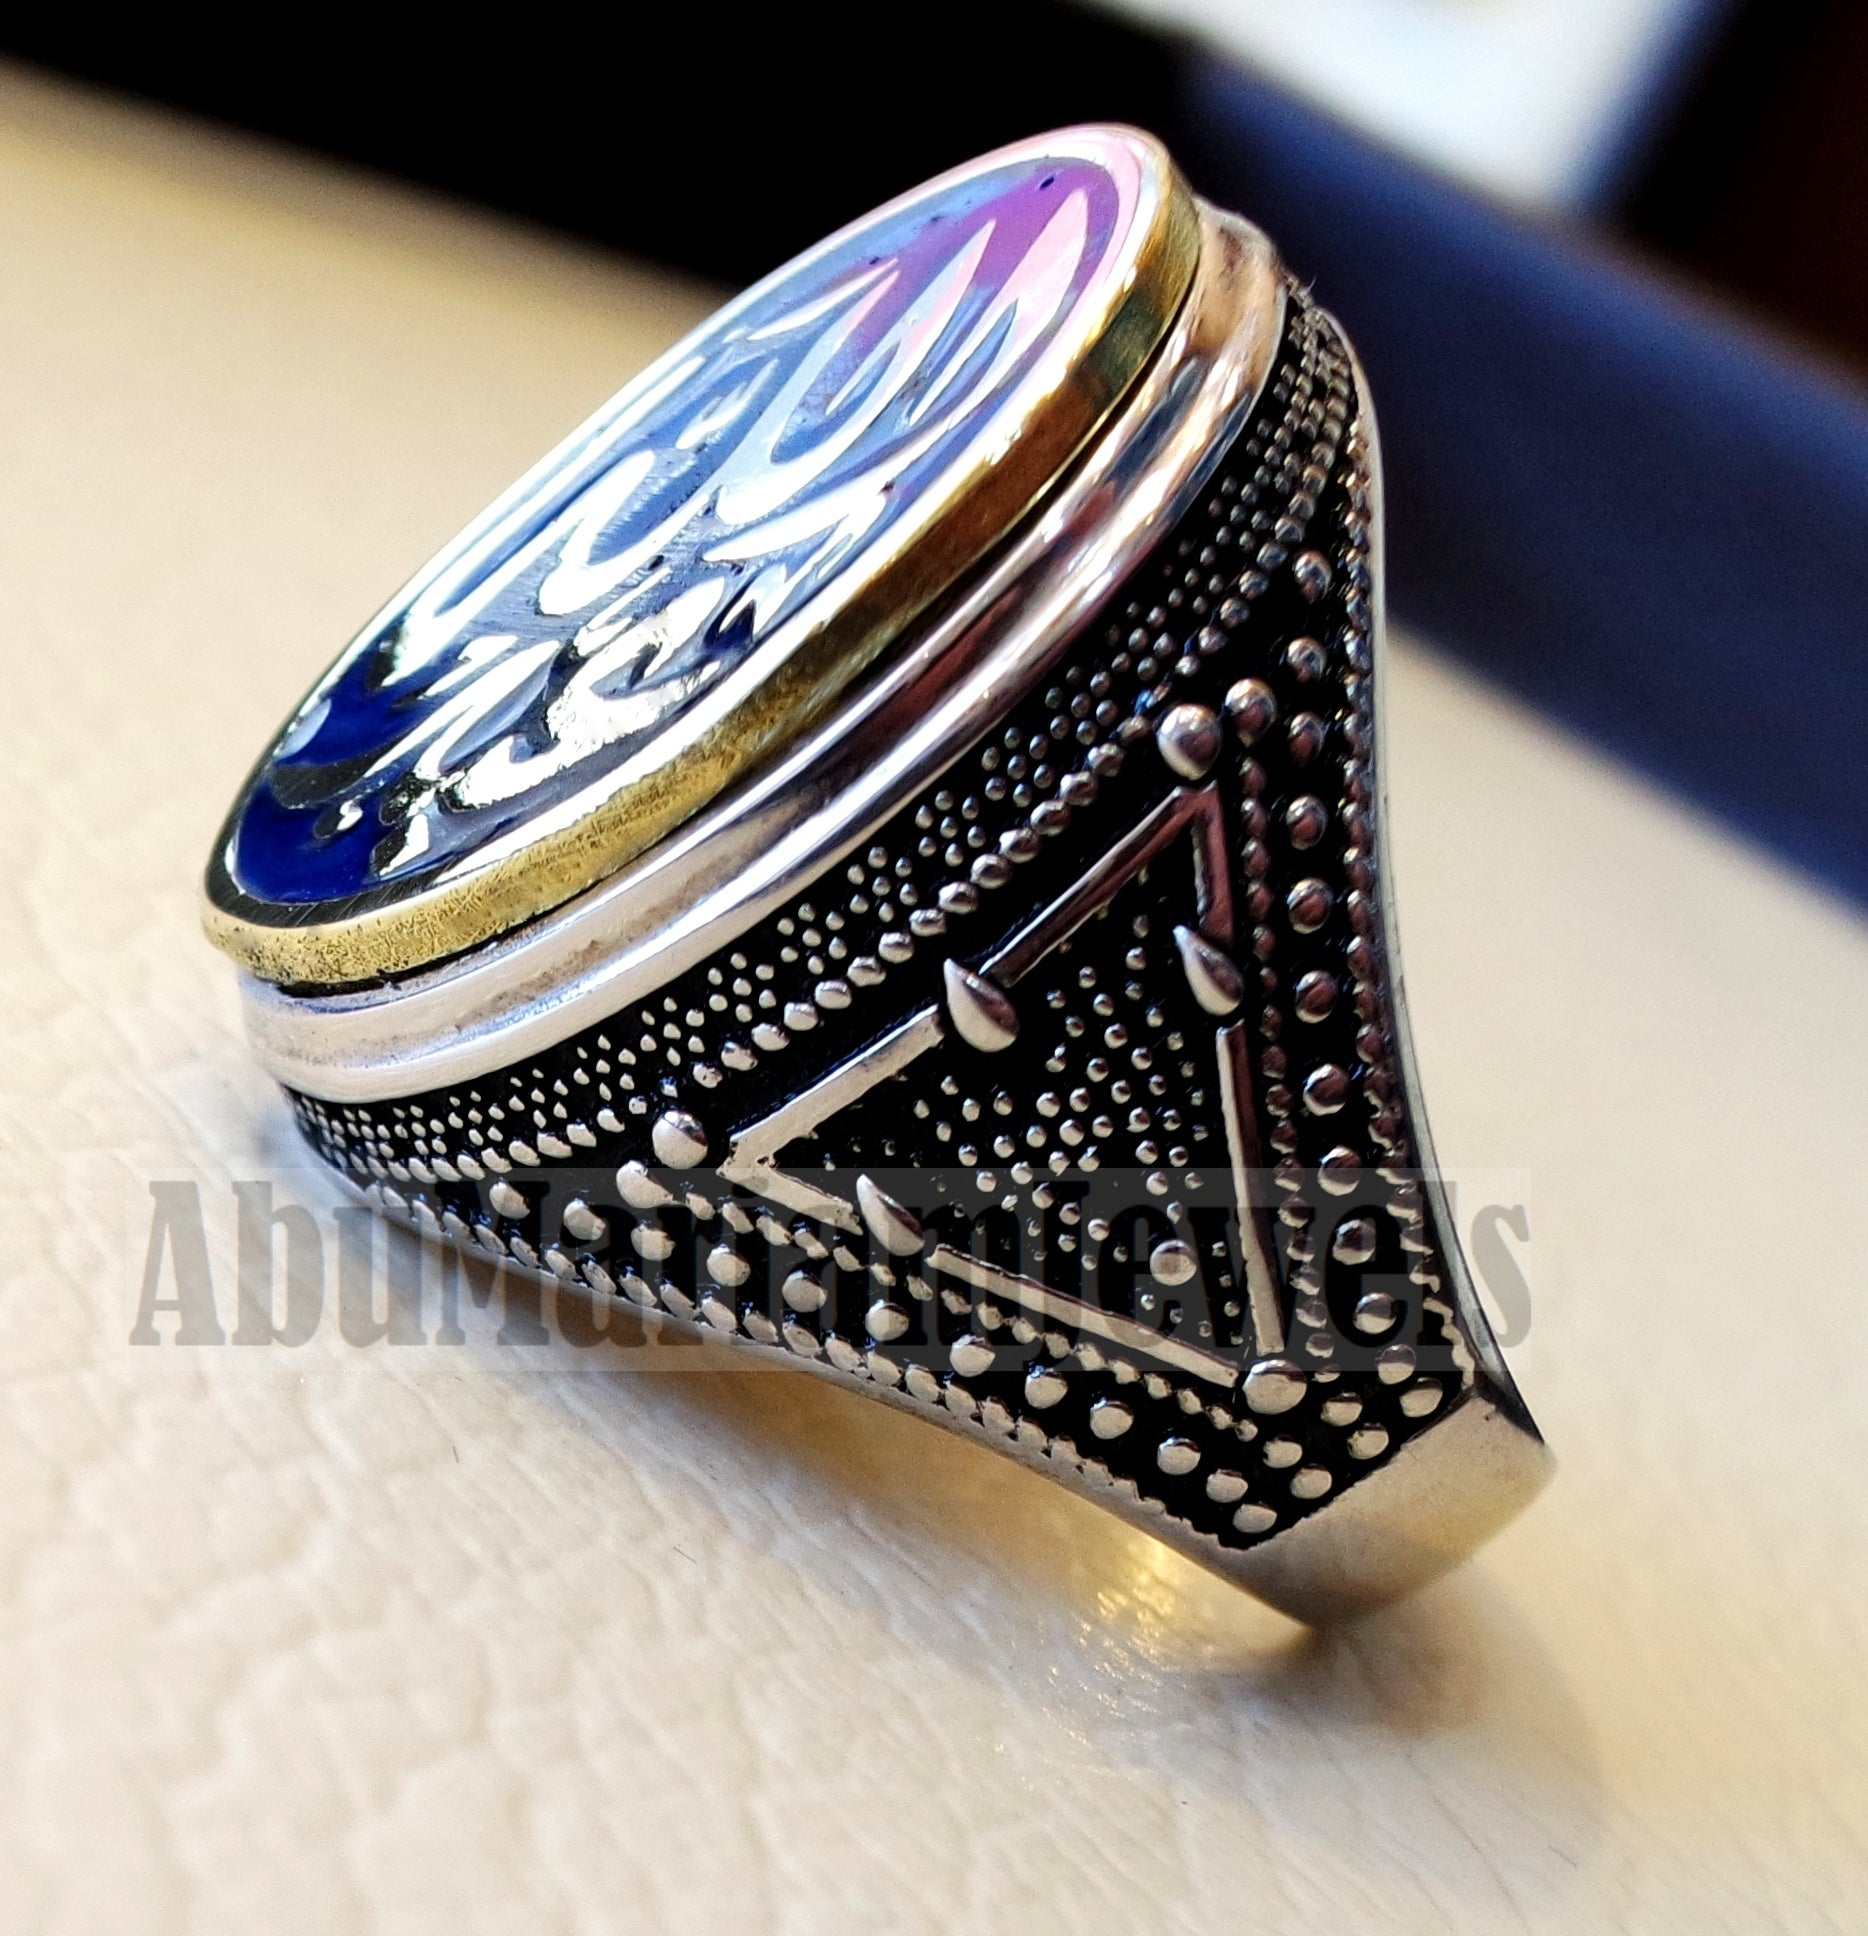 Customized Arabic calligraphy names ring personalized sterling silver 925 and bronze with dark blue enamel TSE1003 خاتم اسم تفصيل